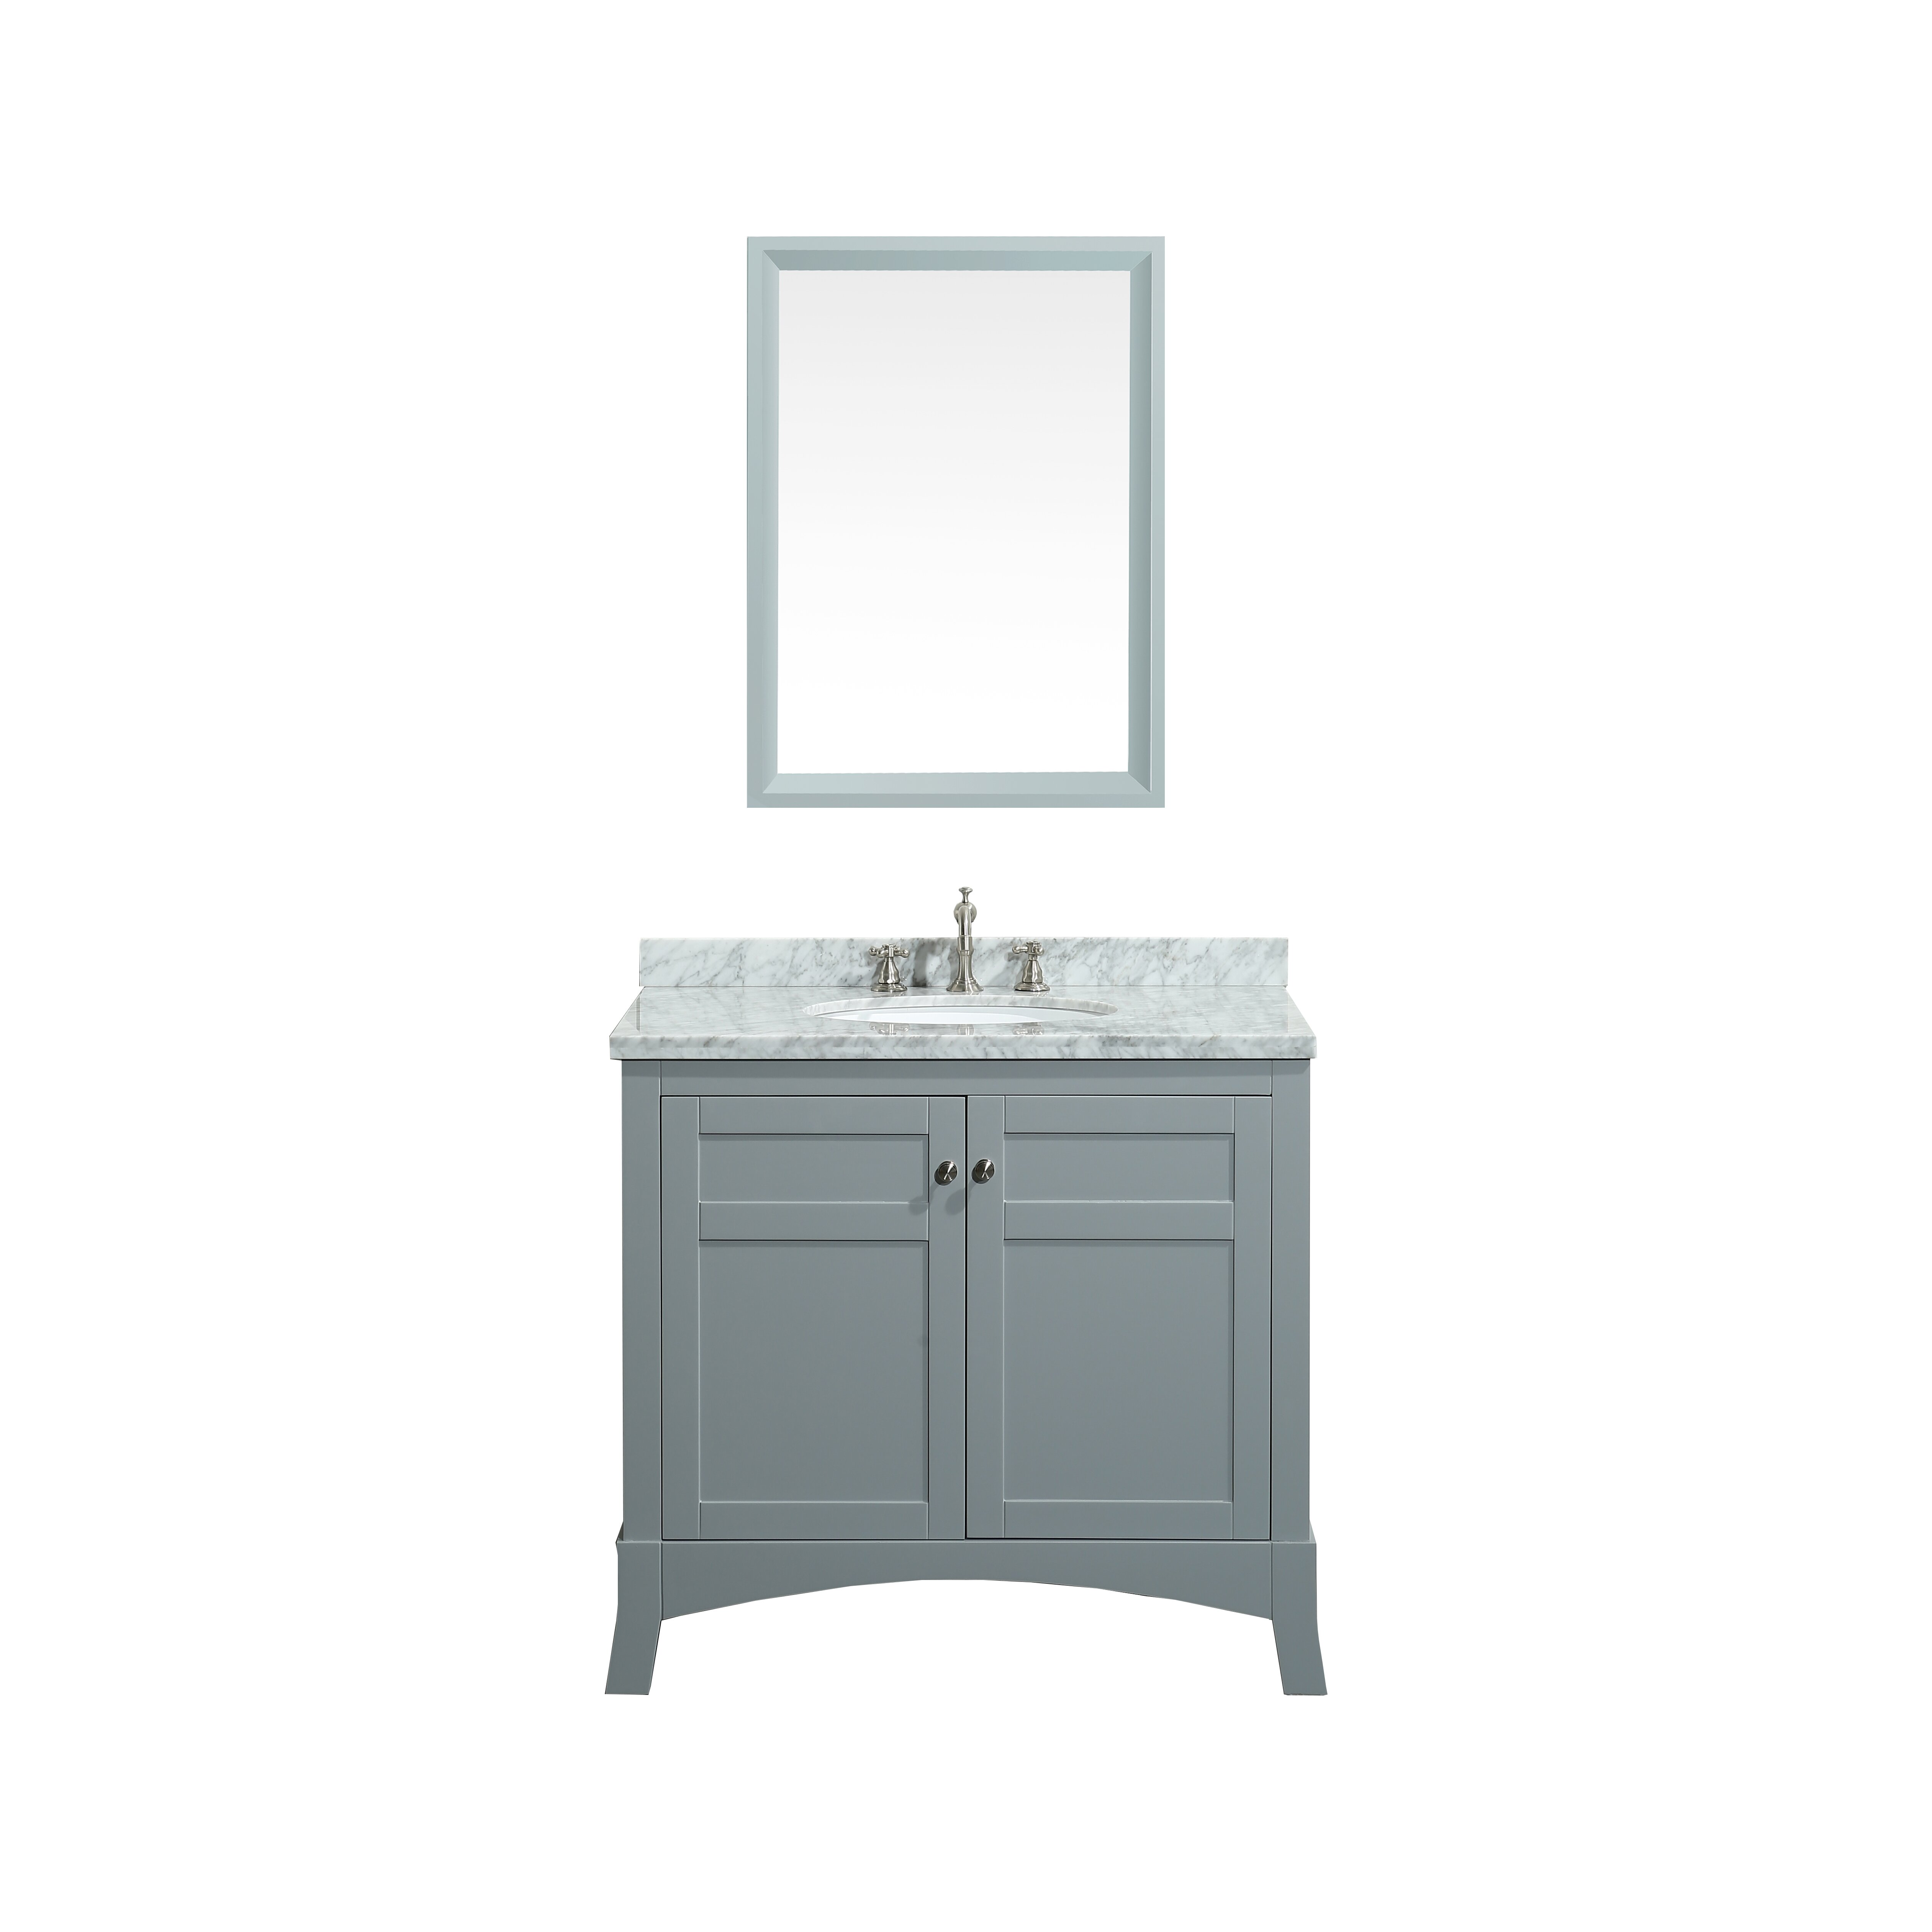 How To Refinish Bathroom Vanity Cabinets Specially For New York Deebonk